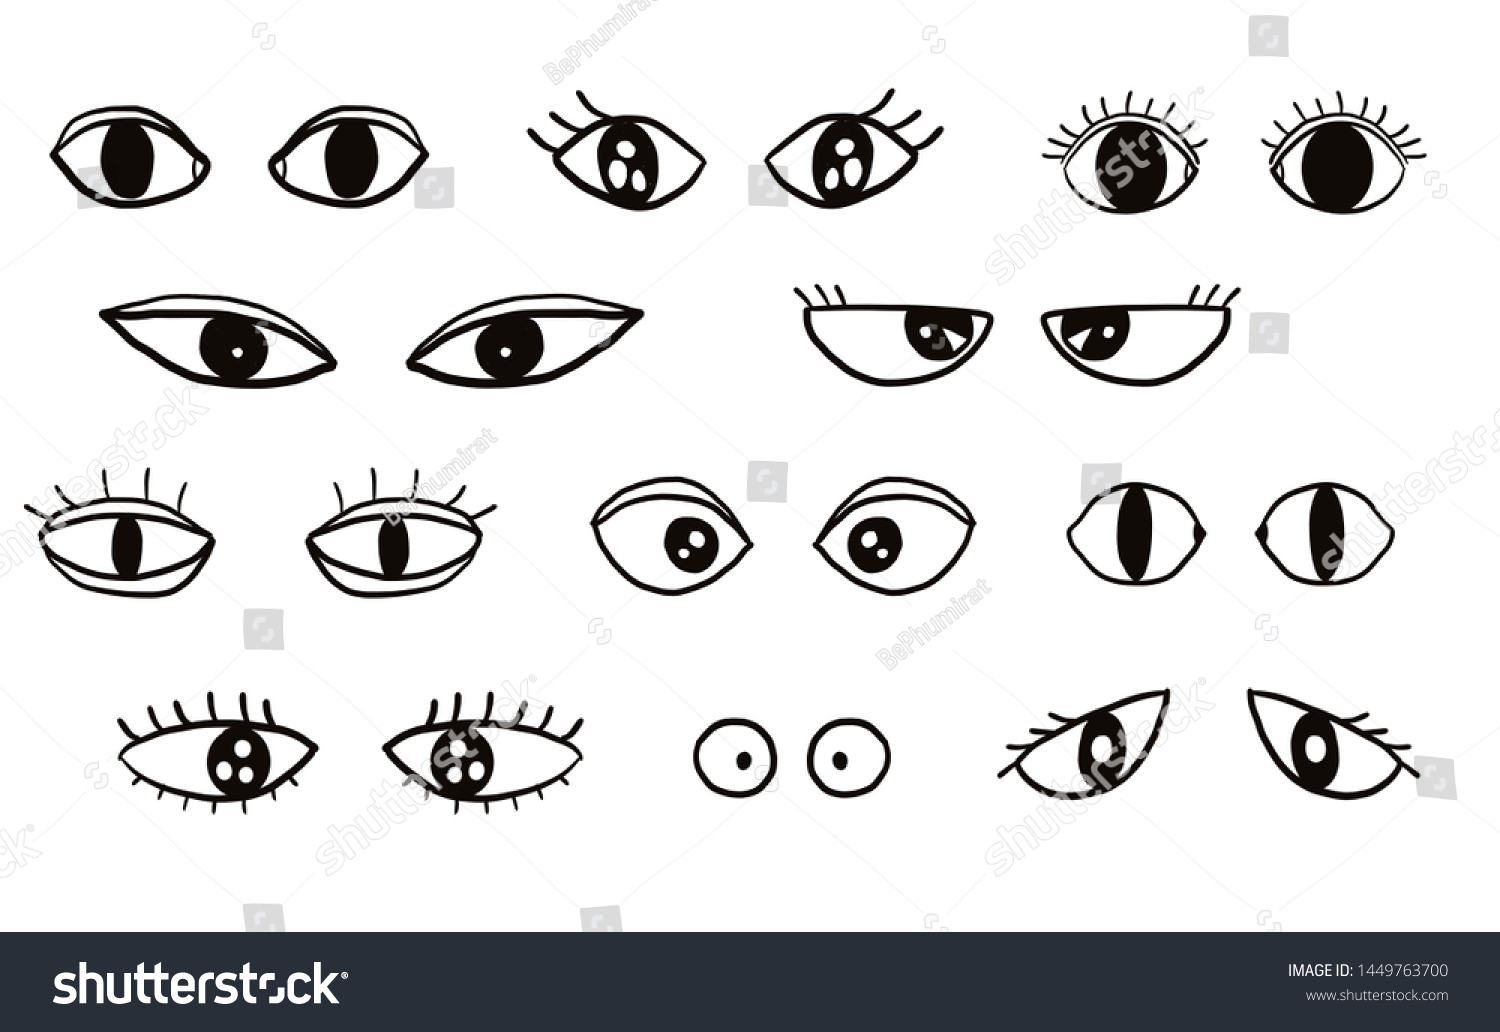 Illustration Cartoon Eyes Drawing Black Ink Stock Illustration